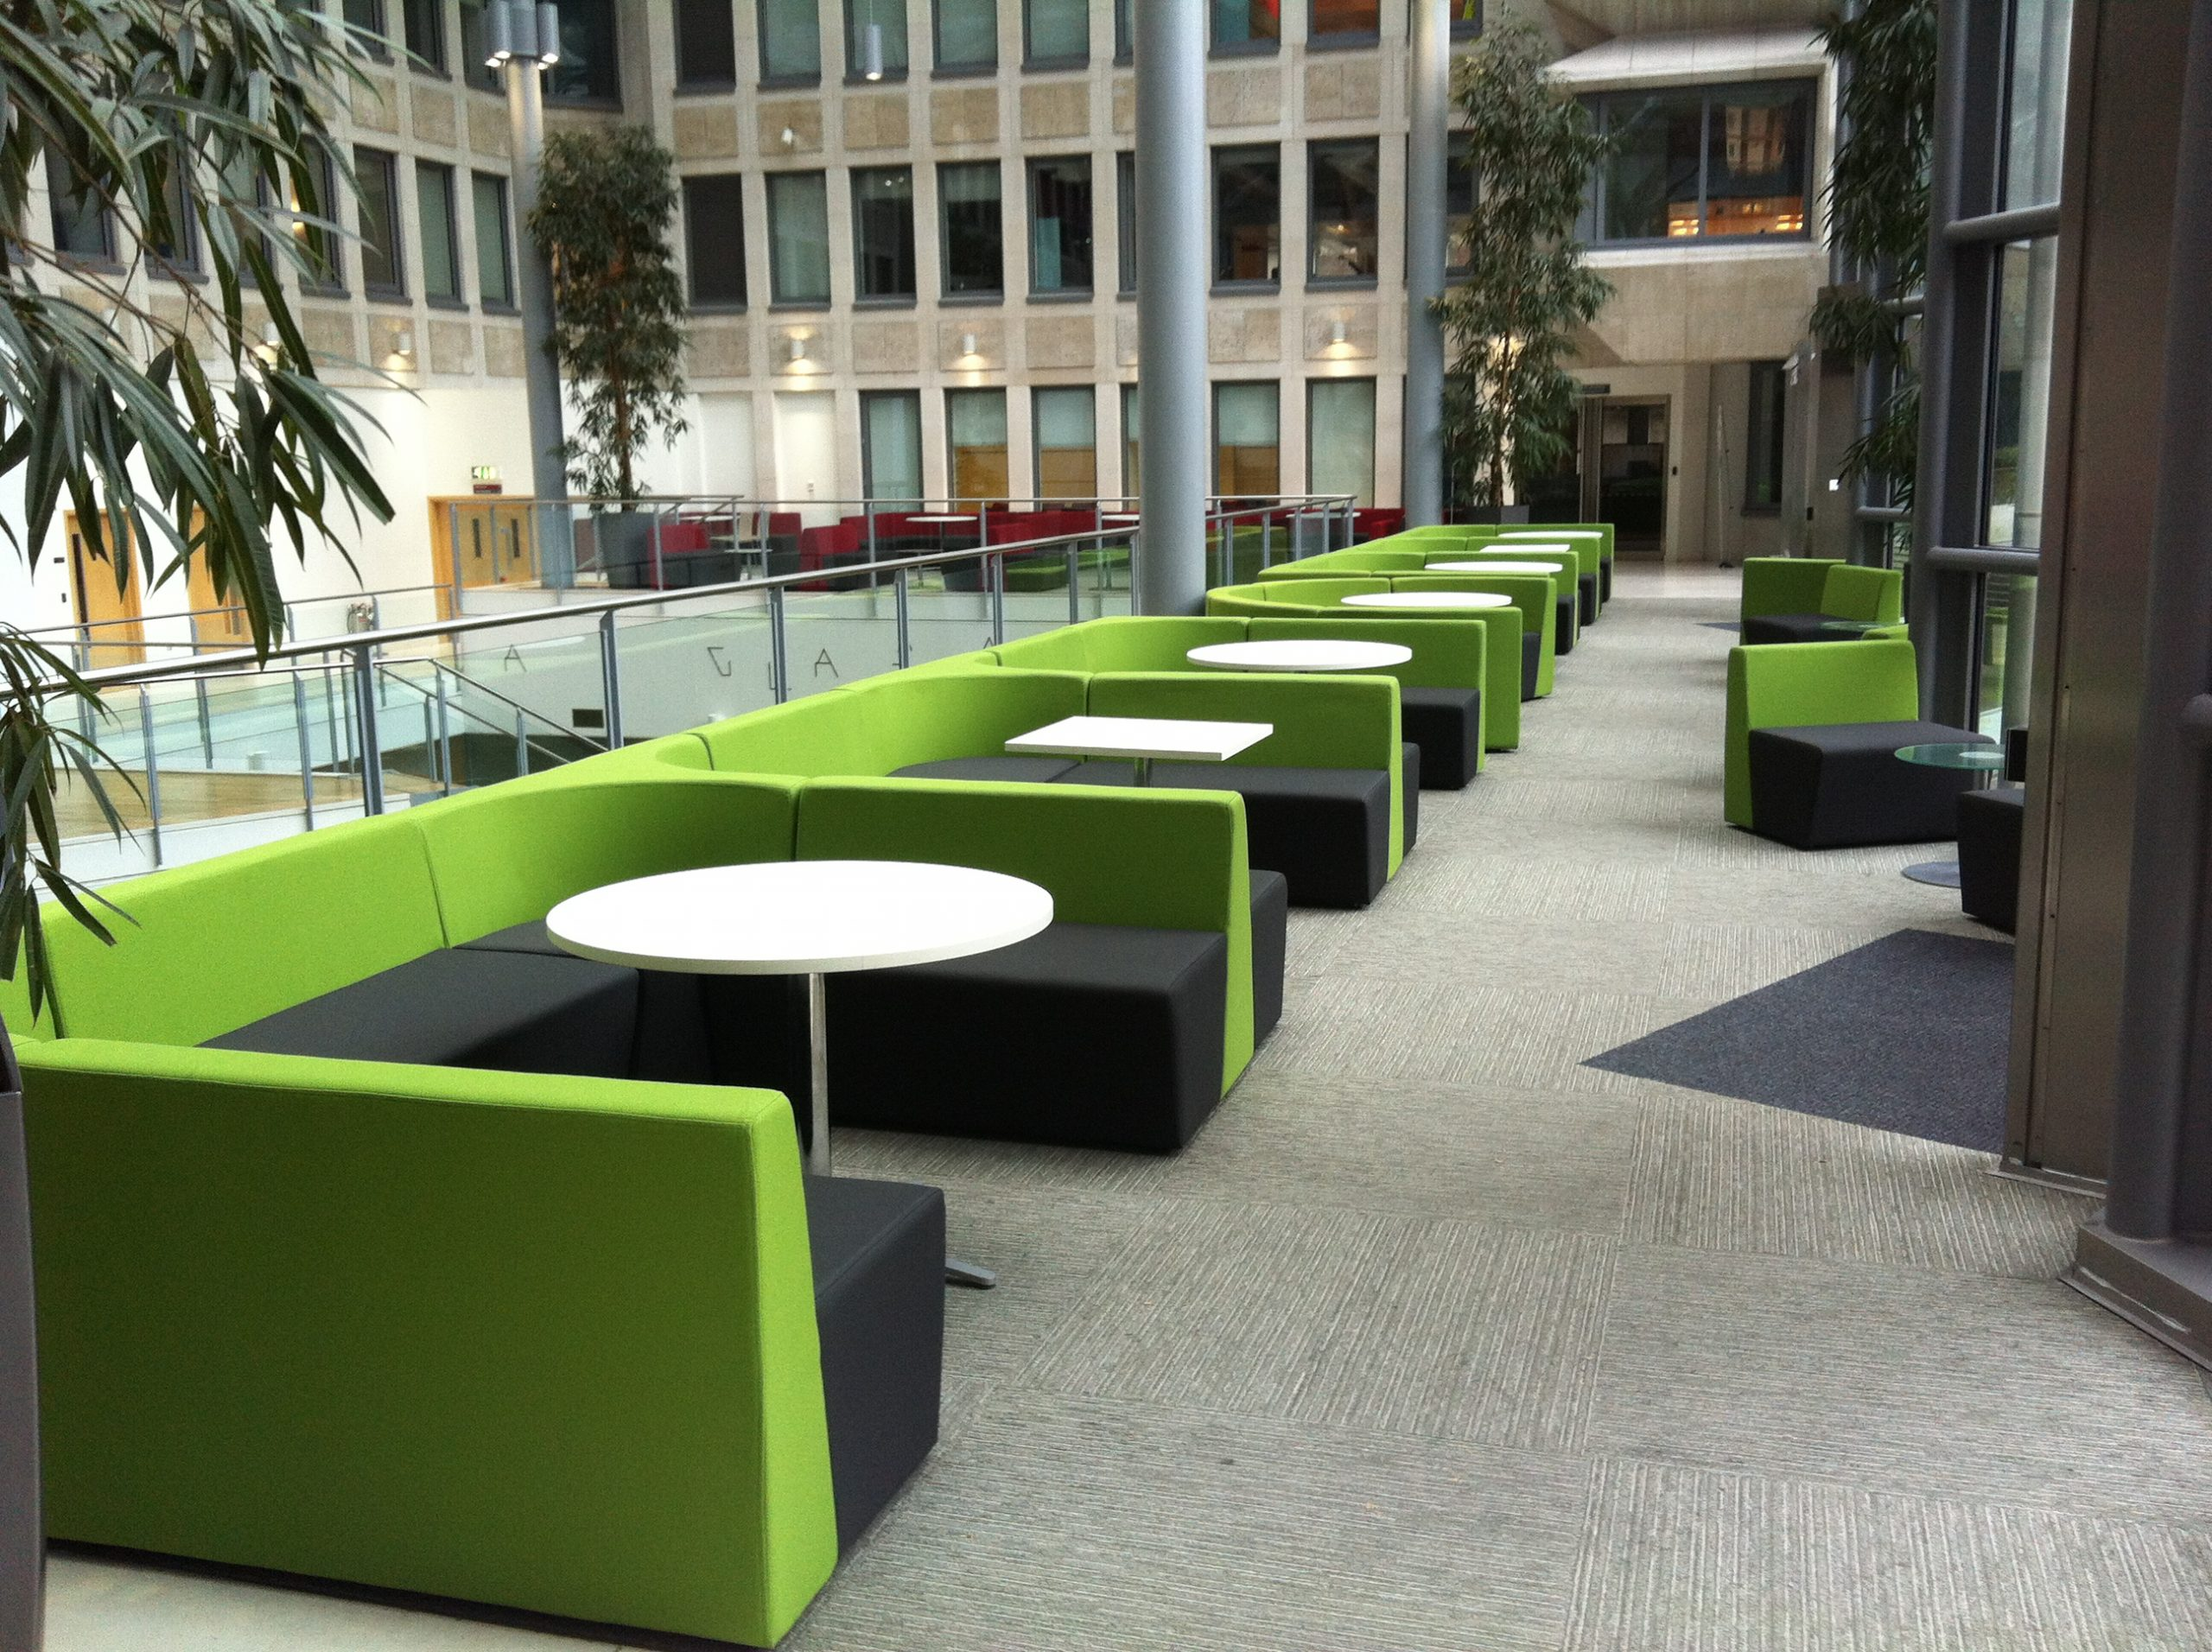 Low Back Sofa Seating Booths scaled